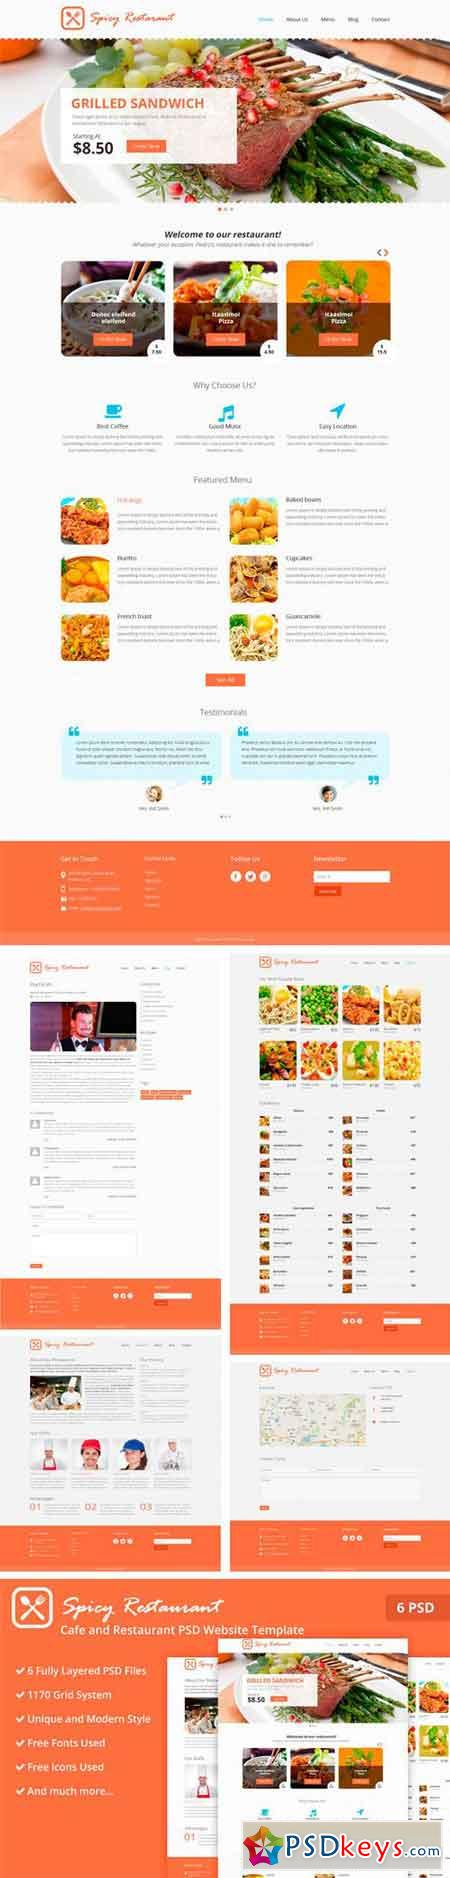 Cafe and Restaurant PSD Template 2164145